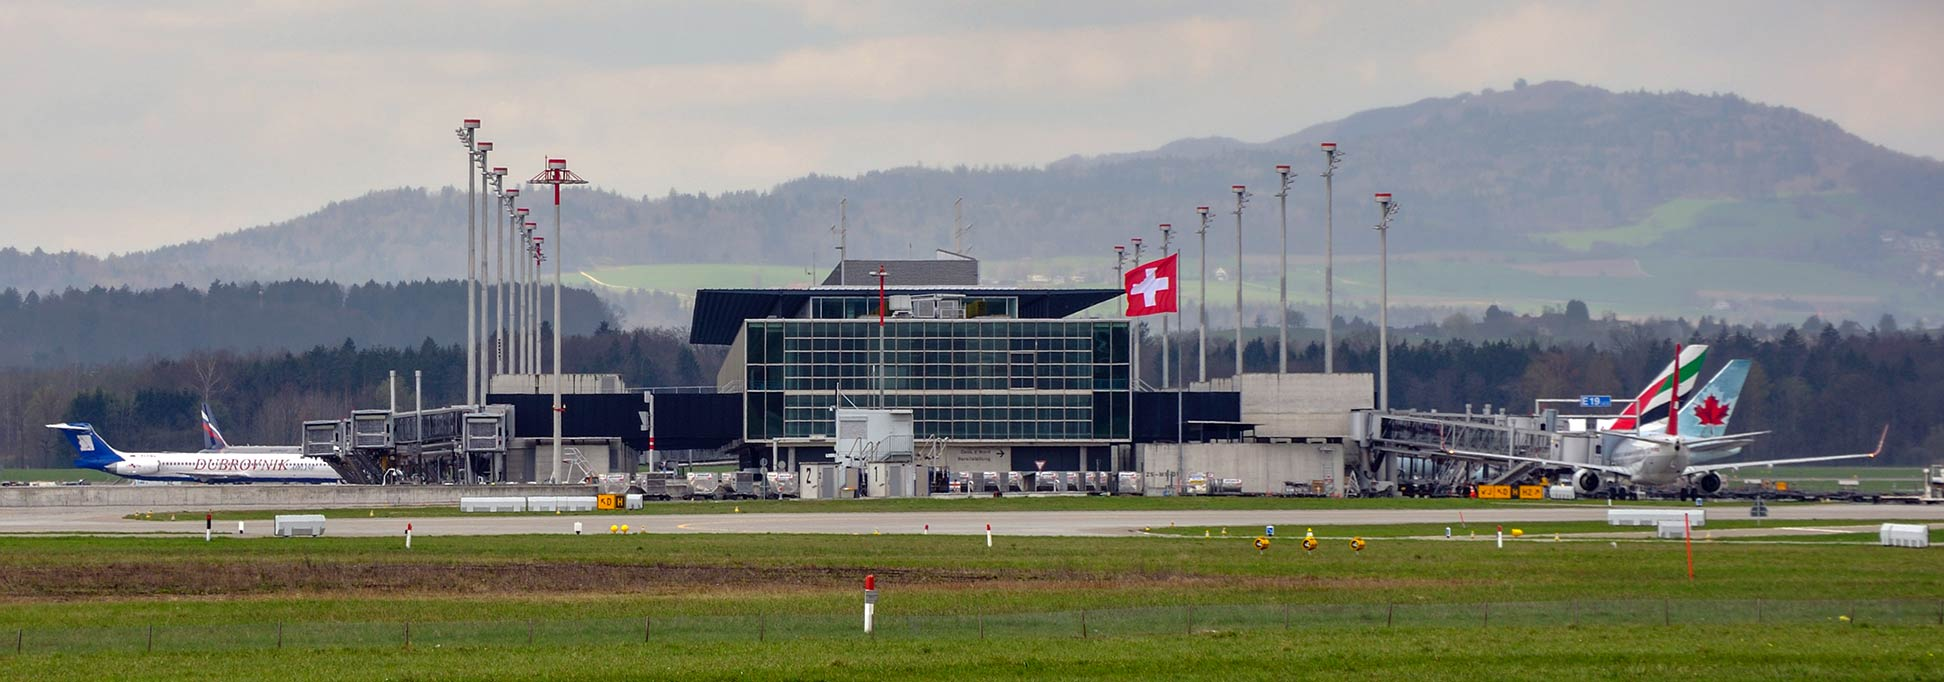 Zurich Kloten Airport Switzerland on zrh airport location